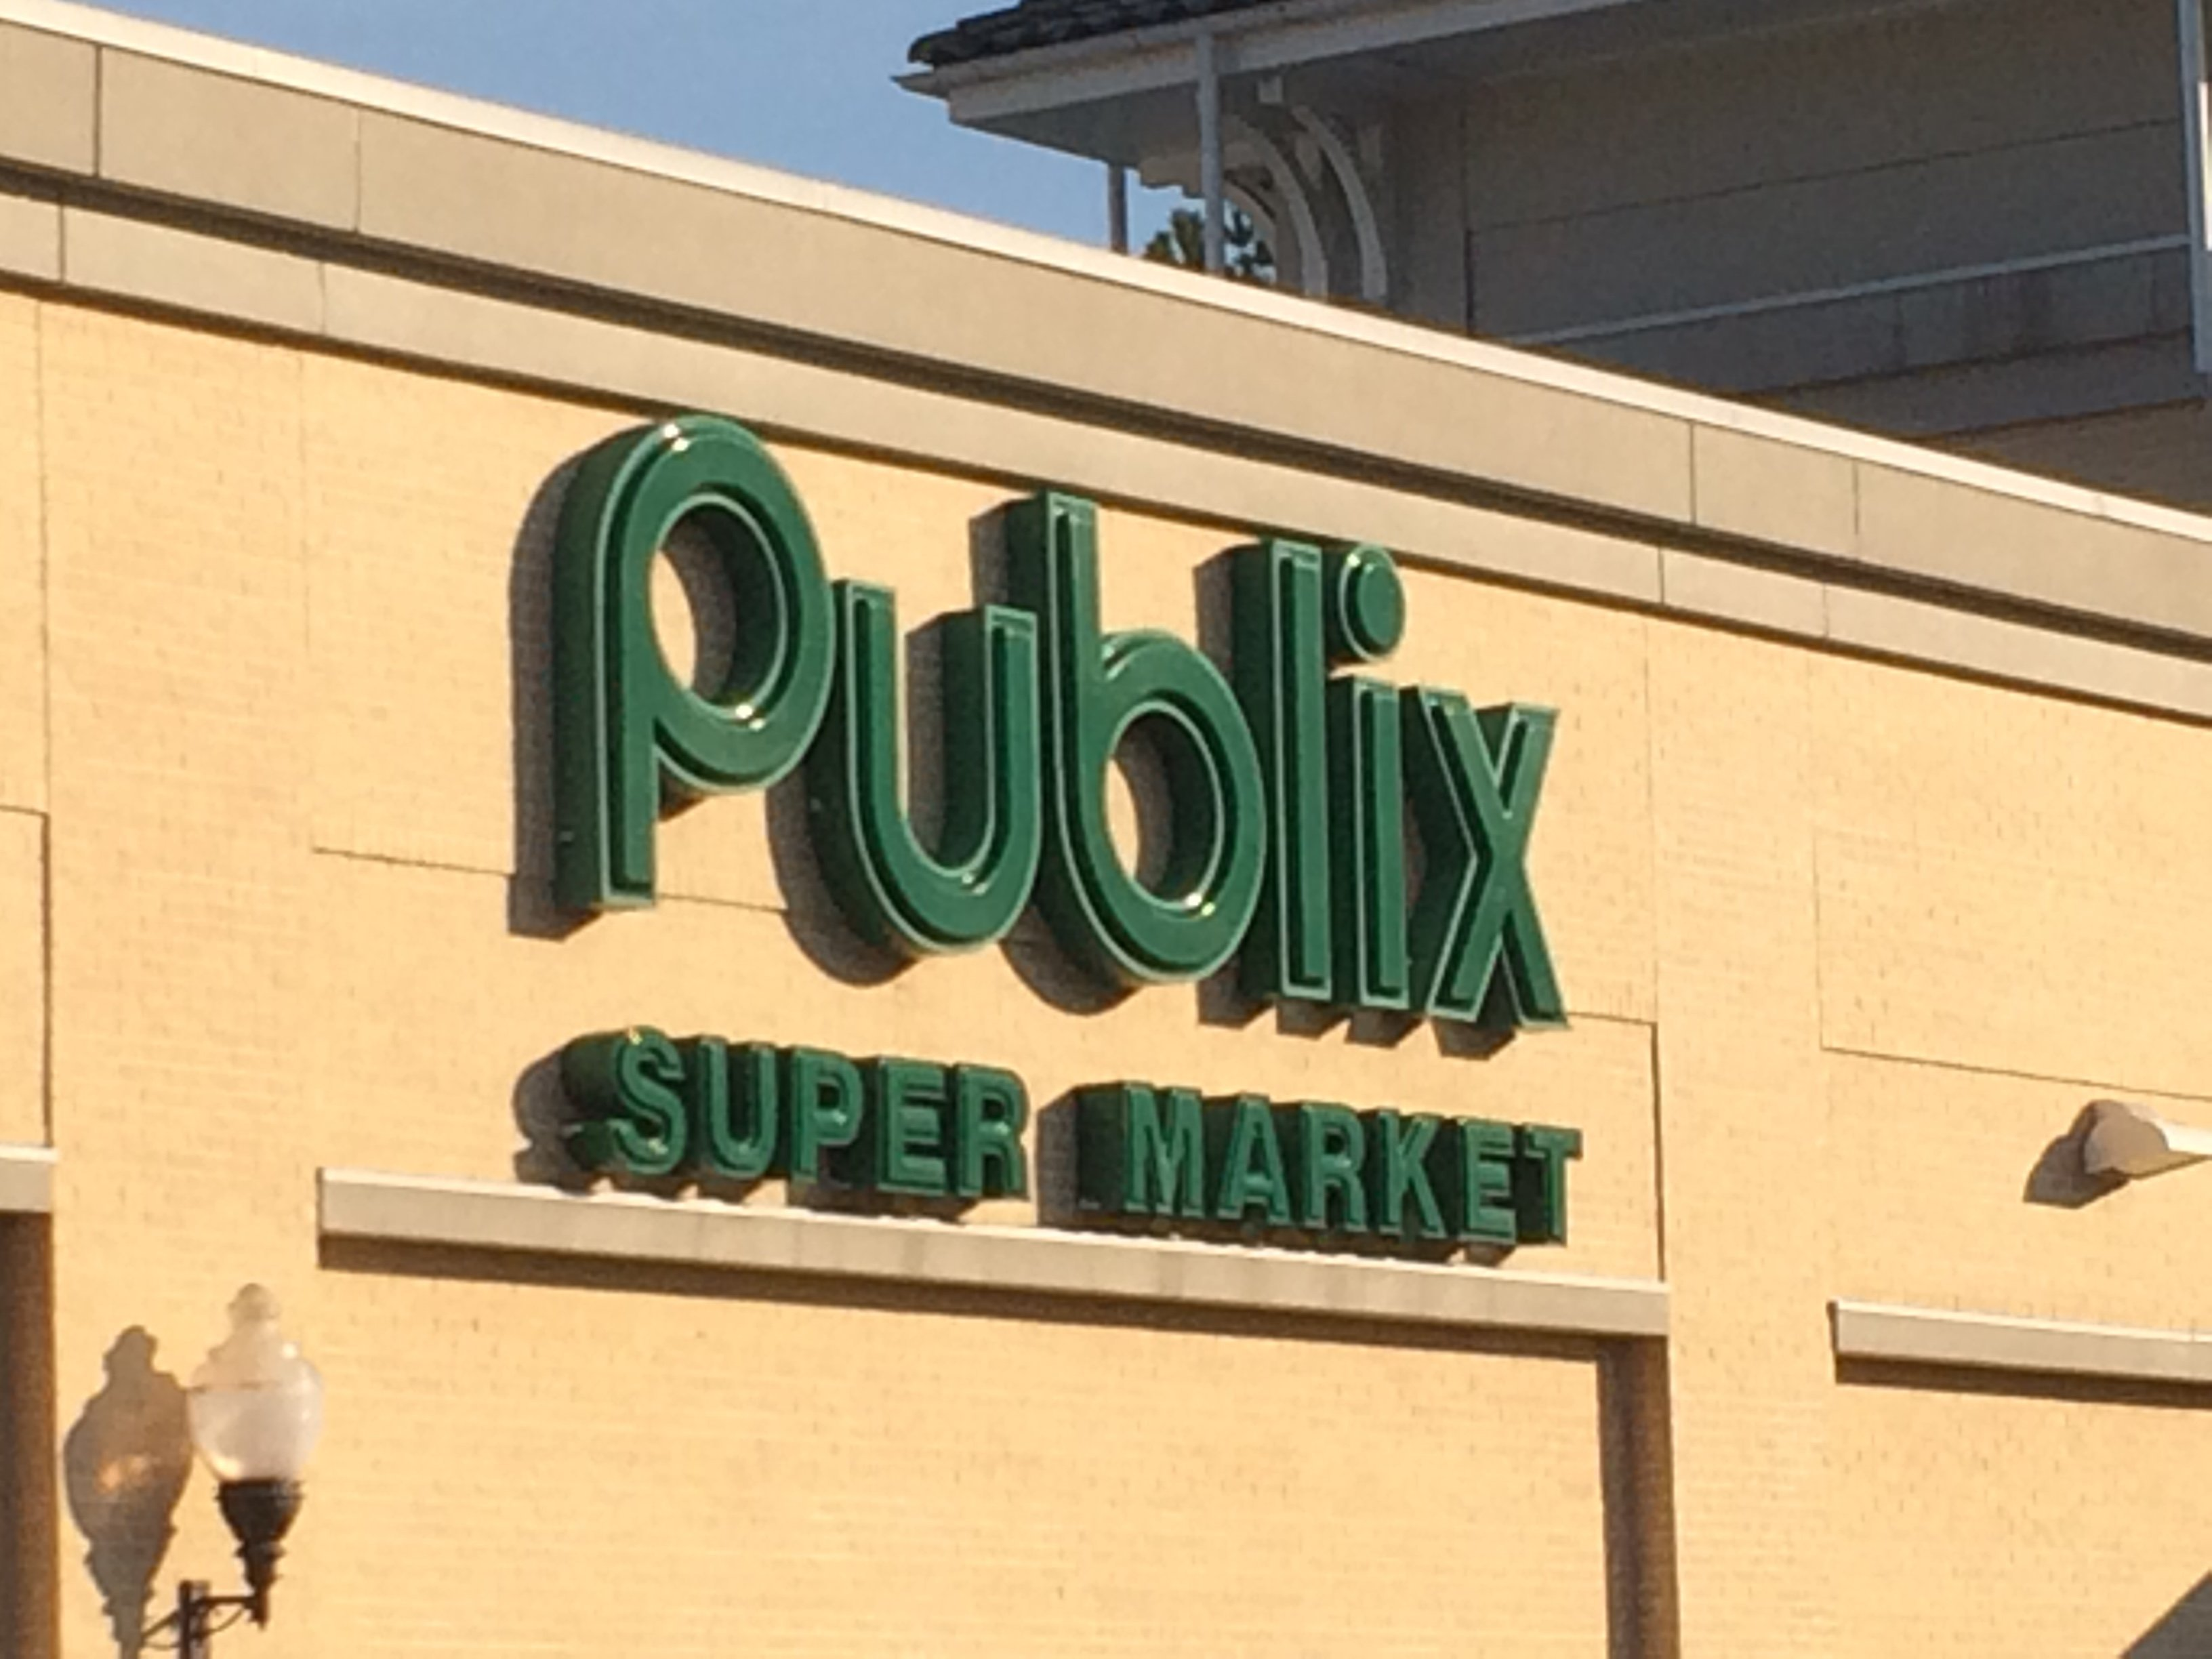 Publix has suspended its political contributions as it reevaluates its giving processes, the national grocery chain said in a statement on Friday.